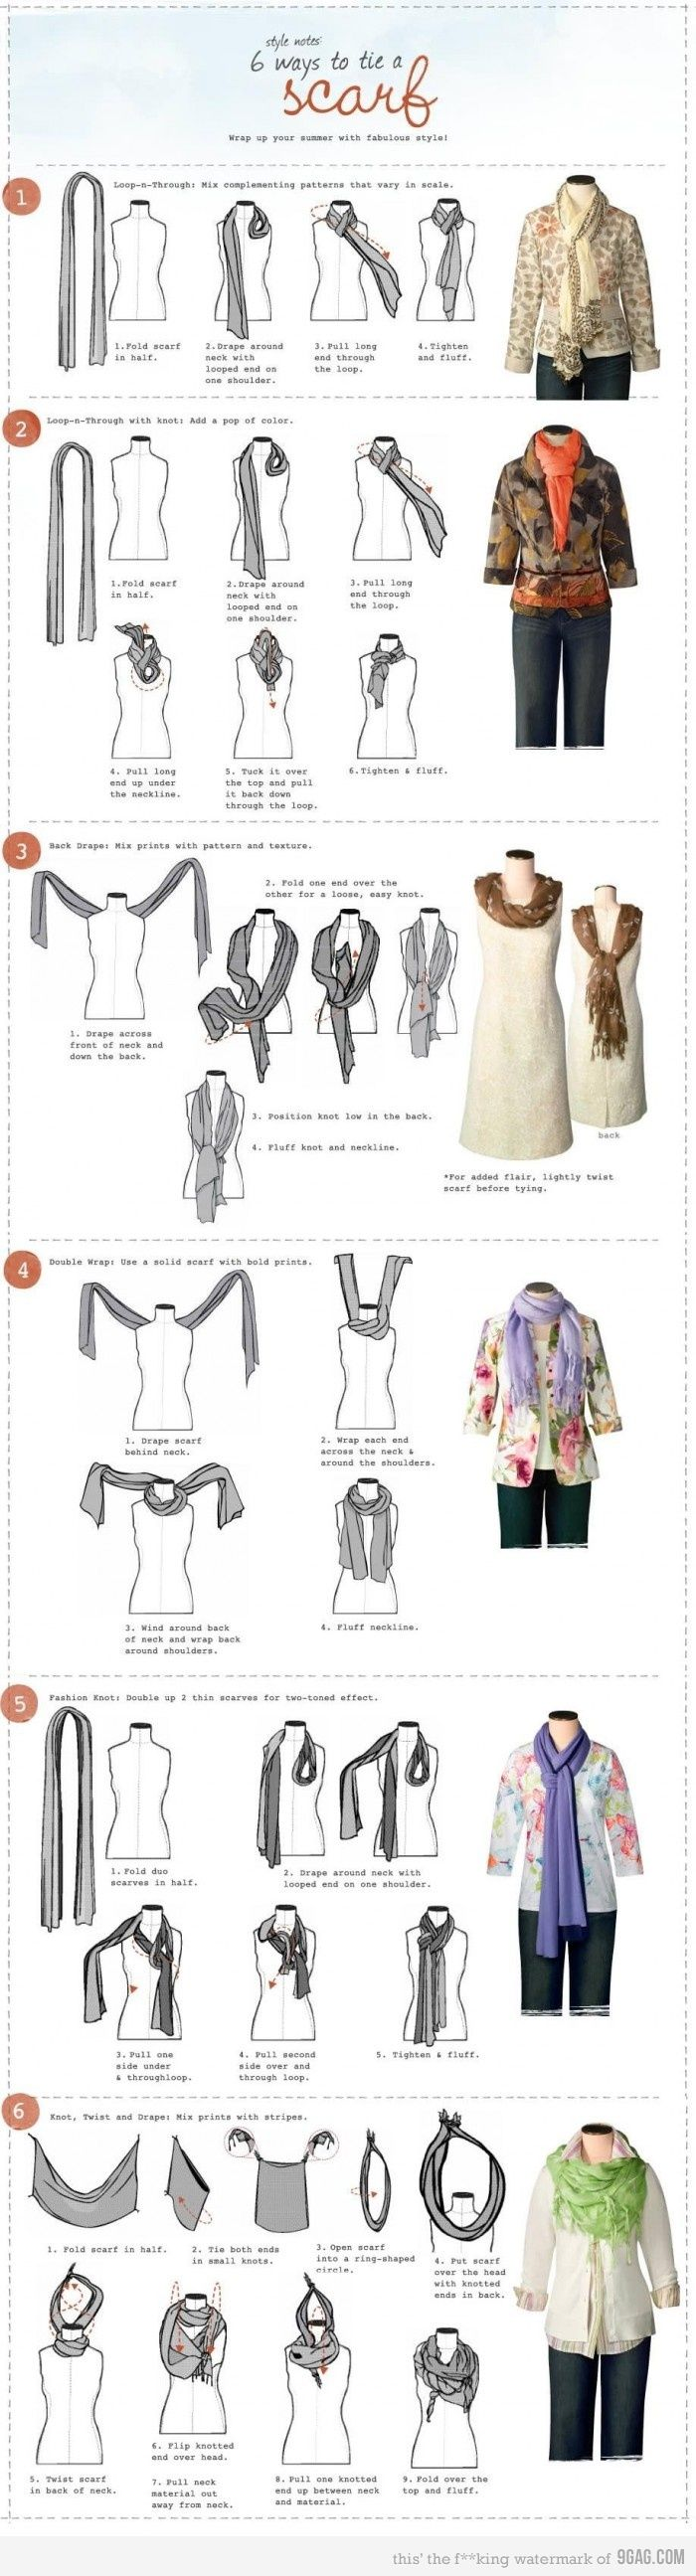 Best 25 tie a scarf ideas on pinterest scarf ideas ways to tie 43 ways to tie a scarf ccuart Choice Image